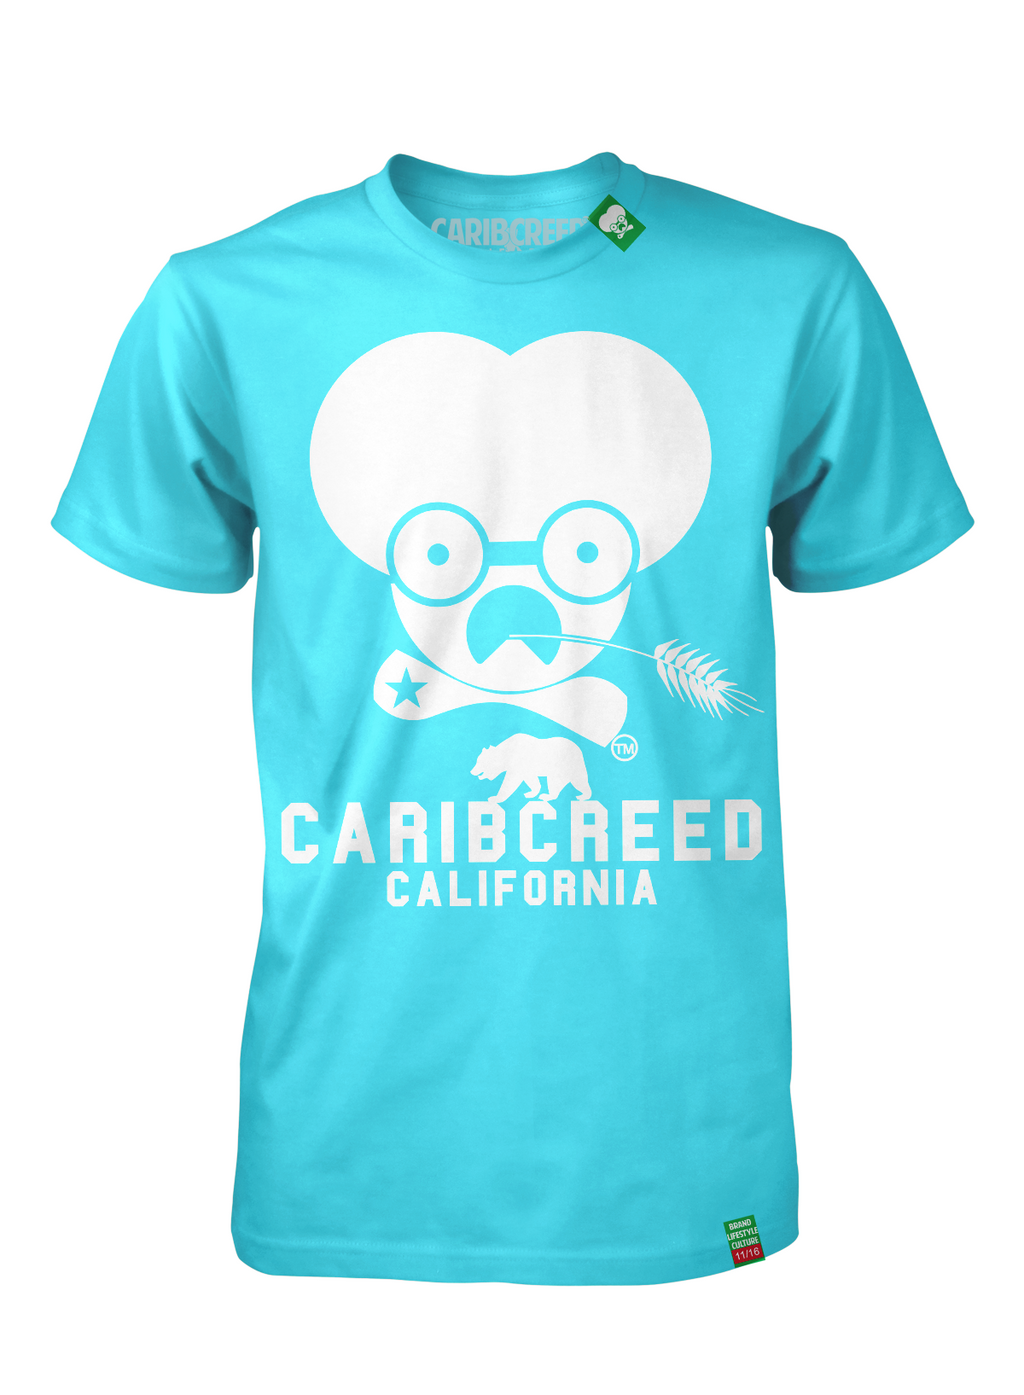 Original Classic | CALIFORNIA - CaribCreed (California) Clothing